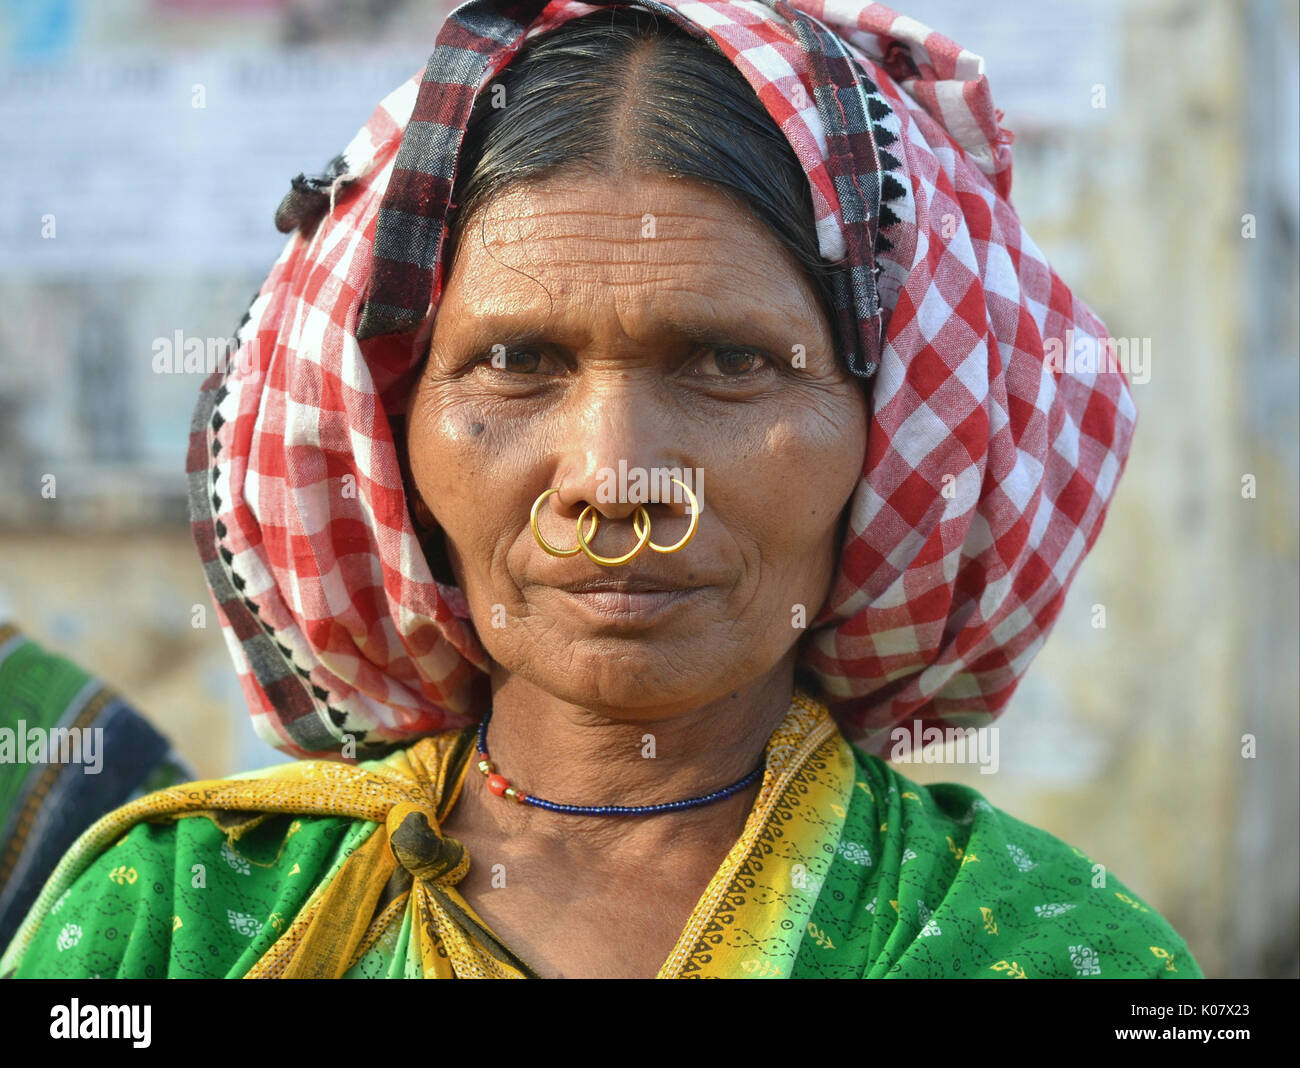 Elderly Indian Adivasi market woman with three golden nose rings. - Stock Image